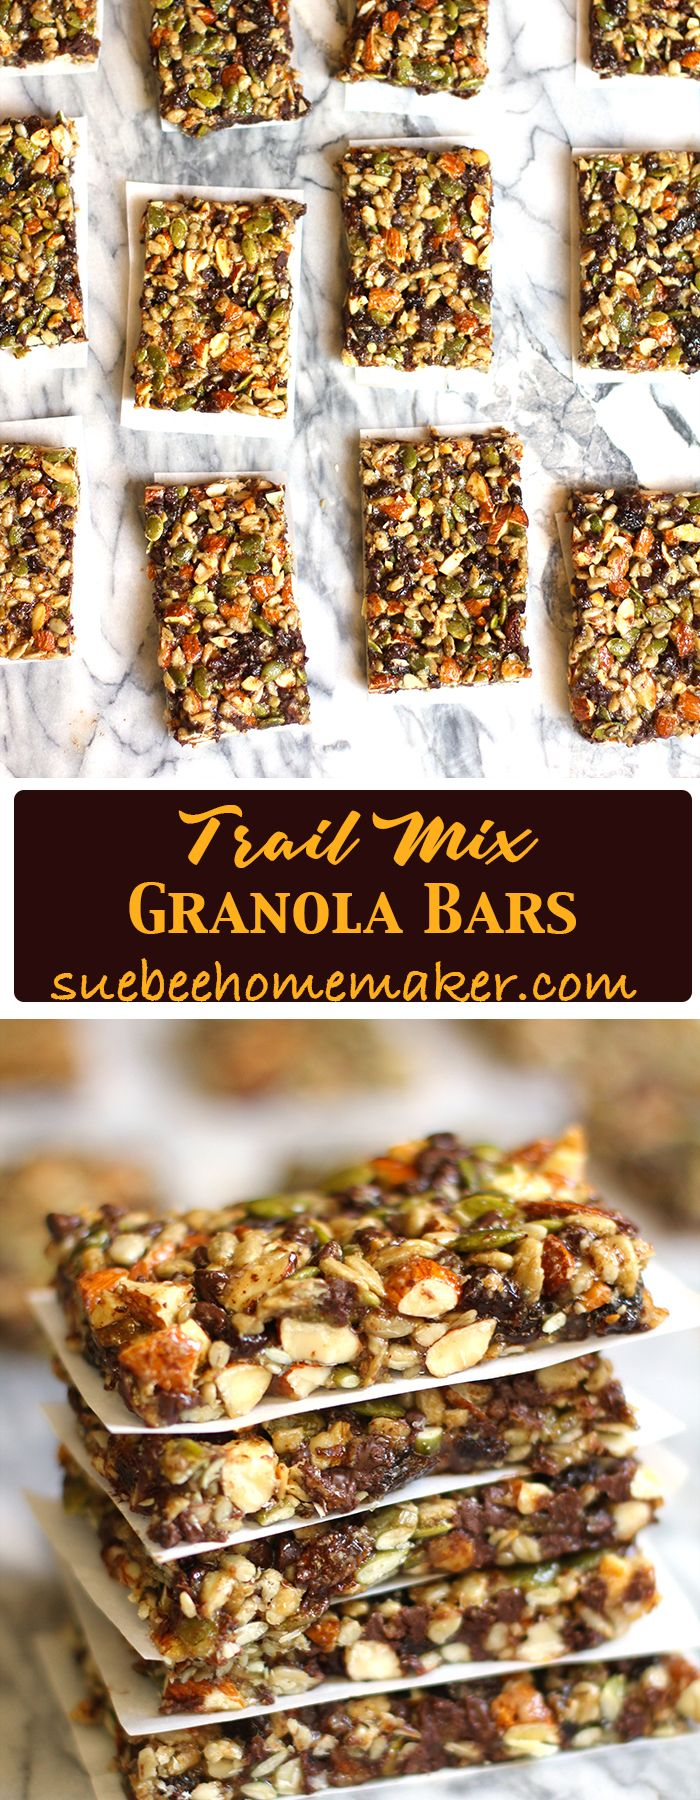 Trail Mix Granola Bars combine all the salty, crunchy nuts, with raisins and chocolate chips - along with brown rice syrup, peanut butter, and almond meal!